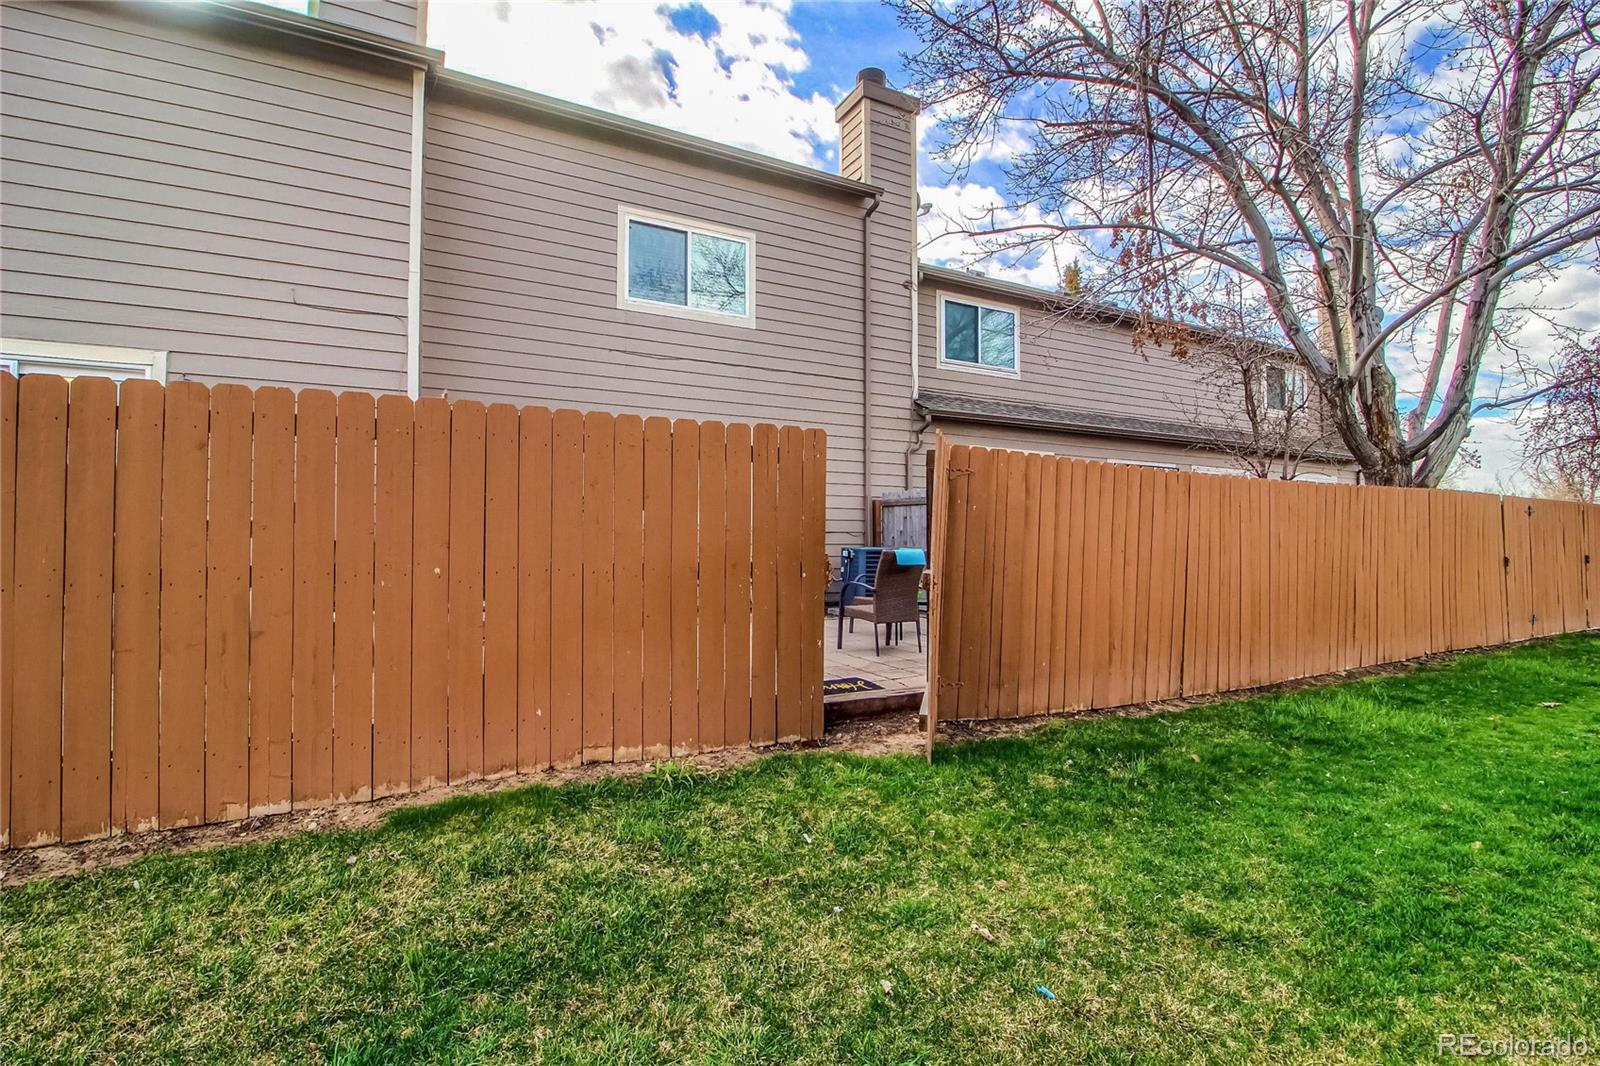 MLS# 3641043 - 30 - 3510 S Telluride Circle #C, Aurora, CO 80013